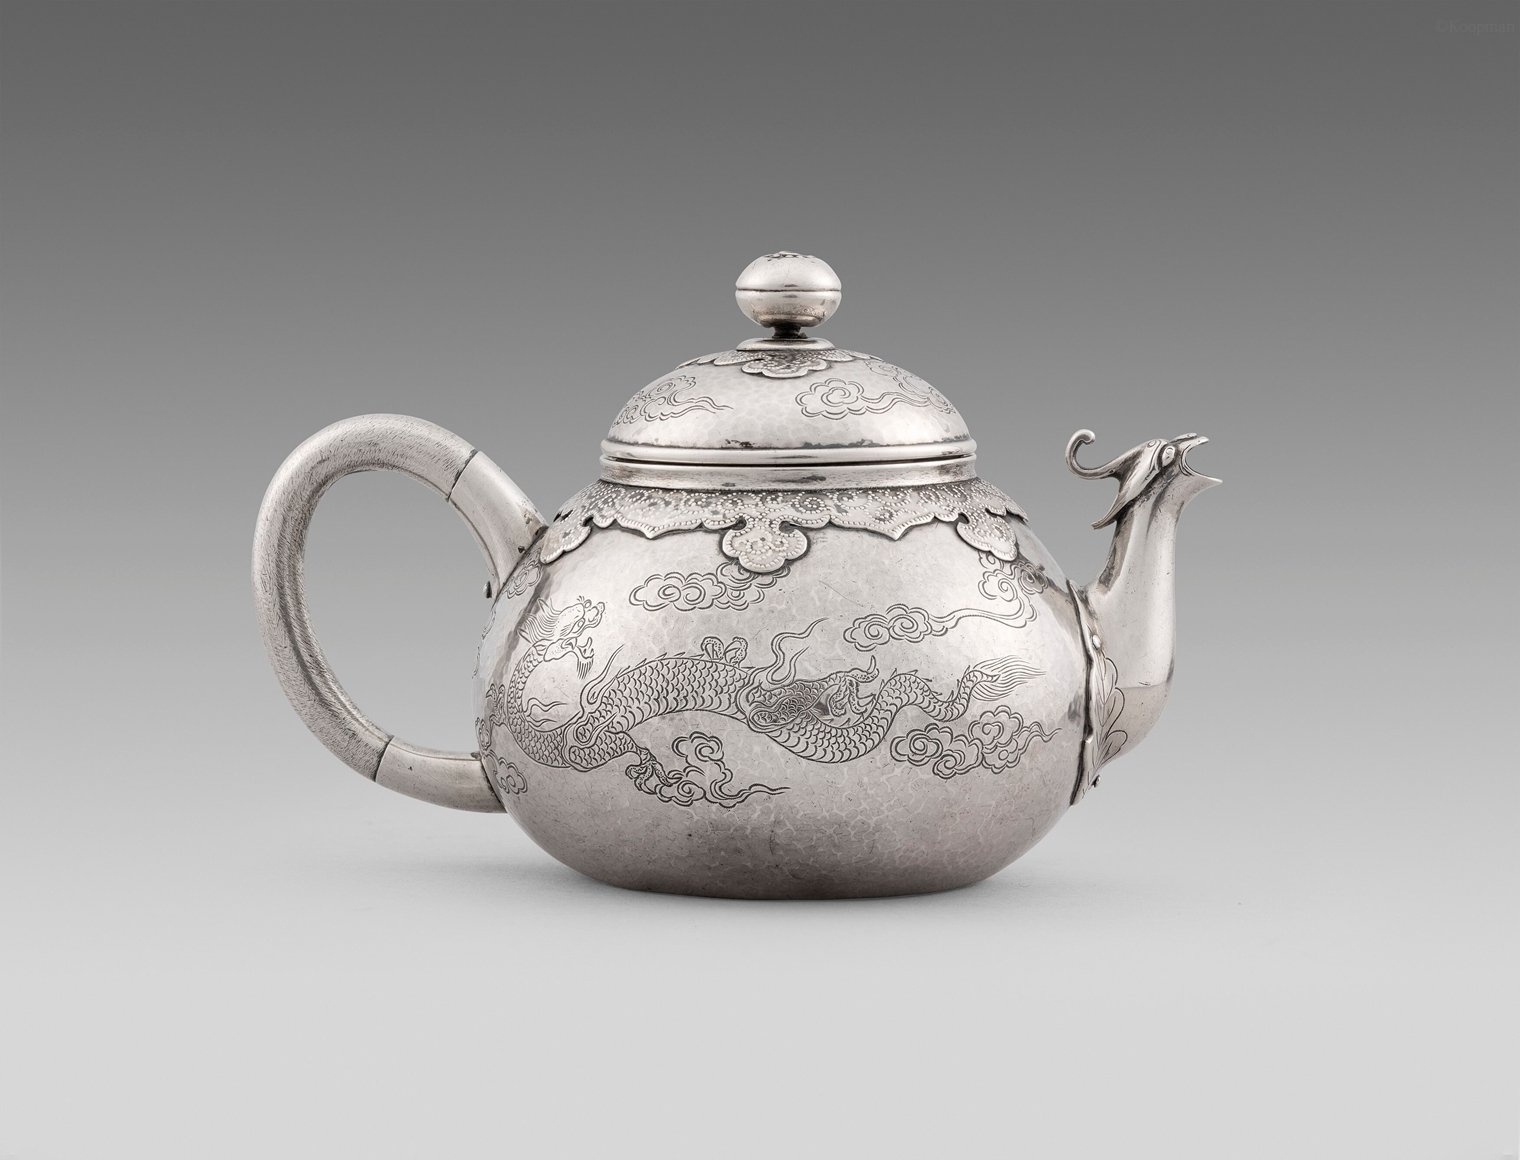 A Bachelor Chinese Teapot